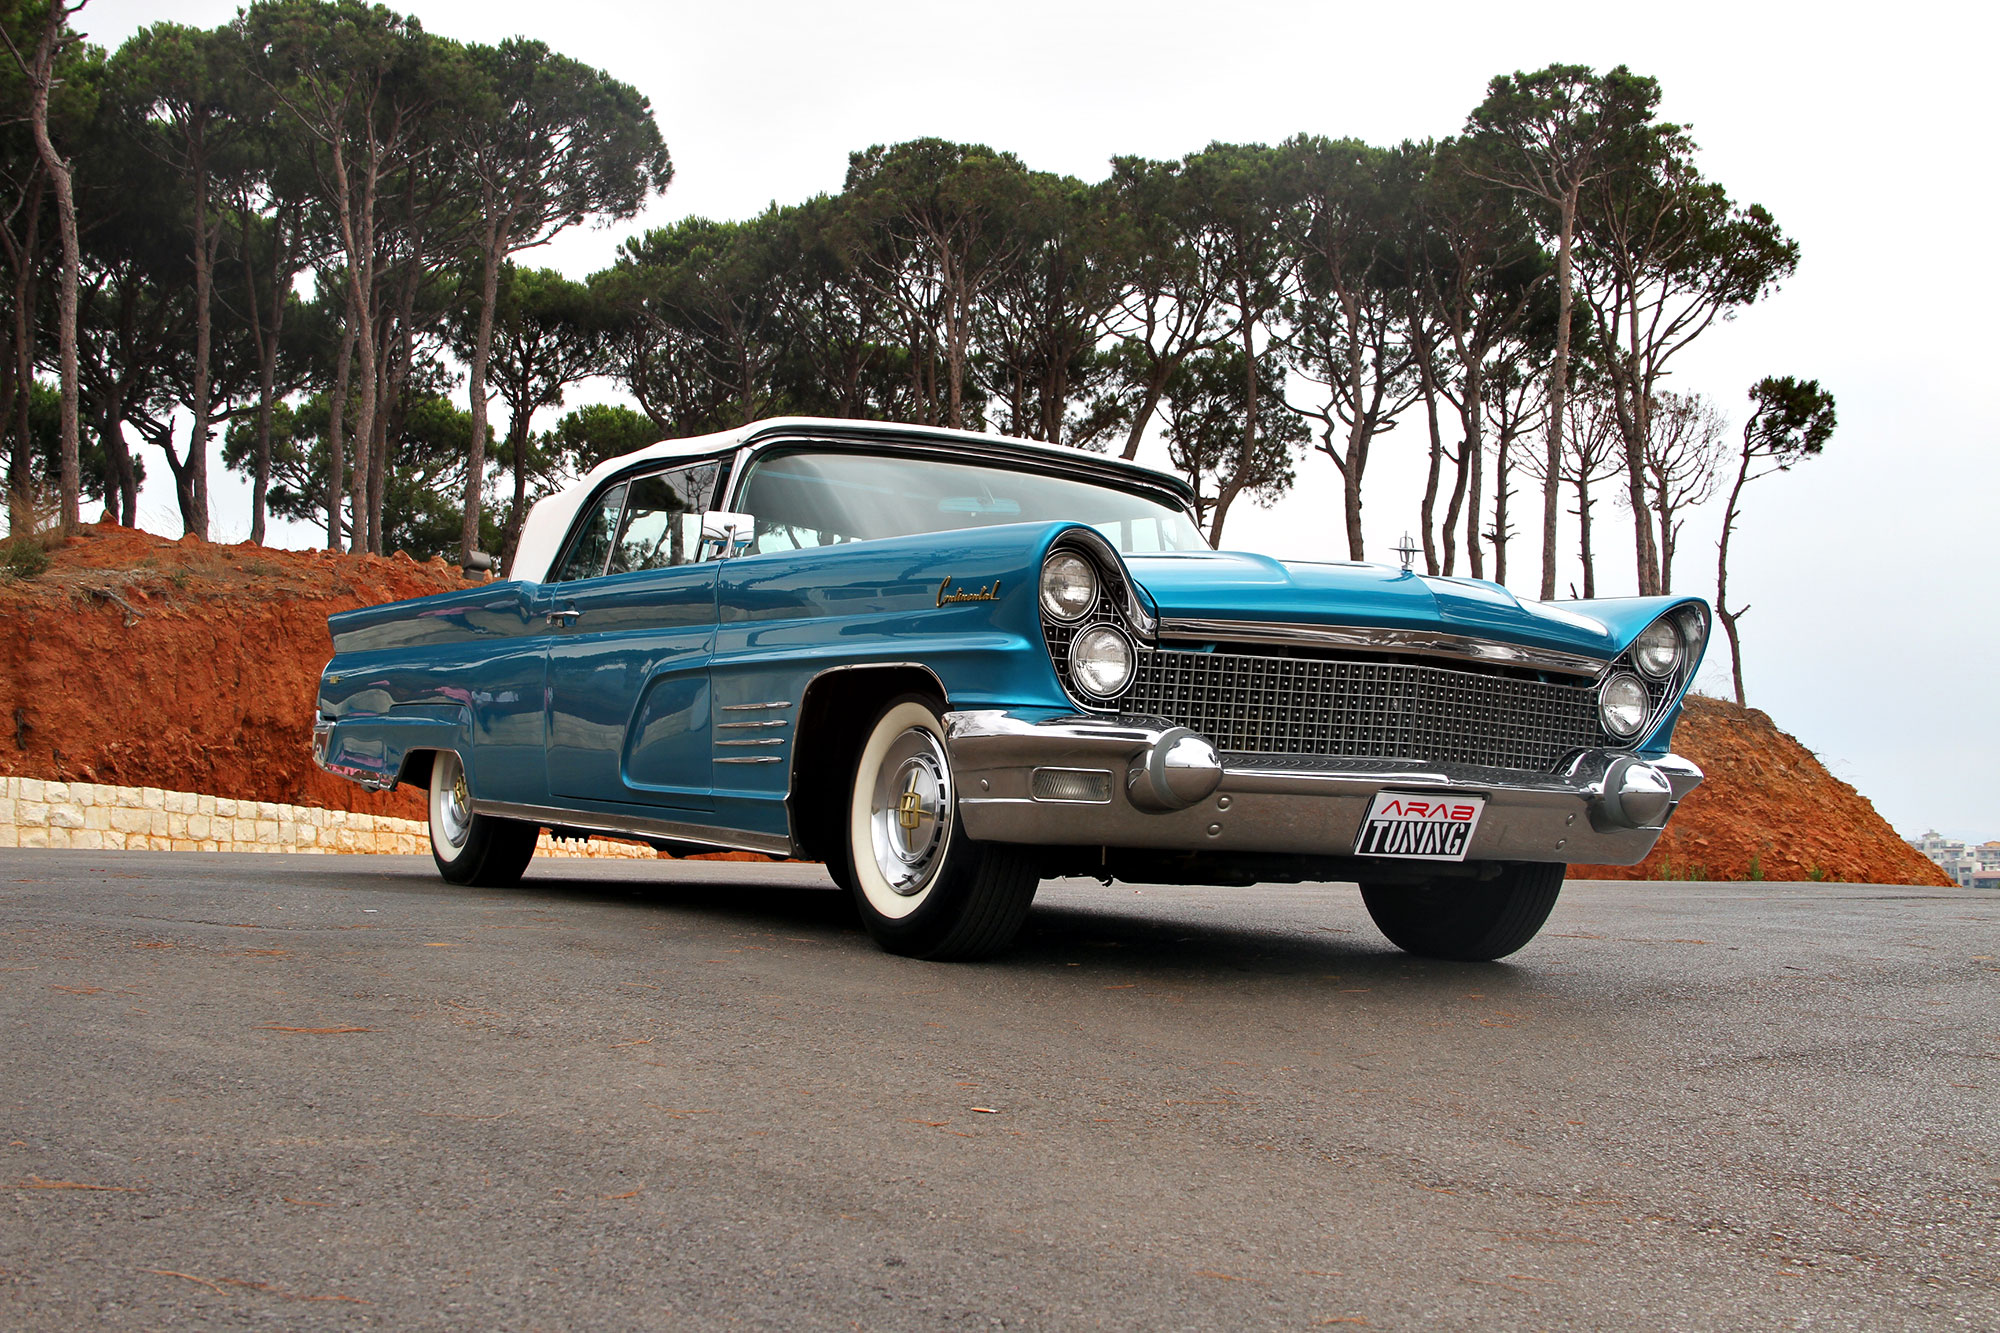 One of The Rarest Luxury Cars - 1960 Lincoln Continental Mark V ...